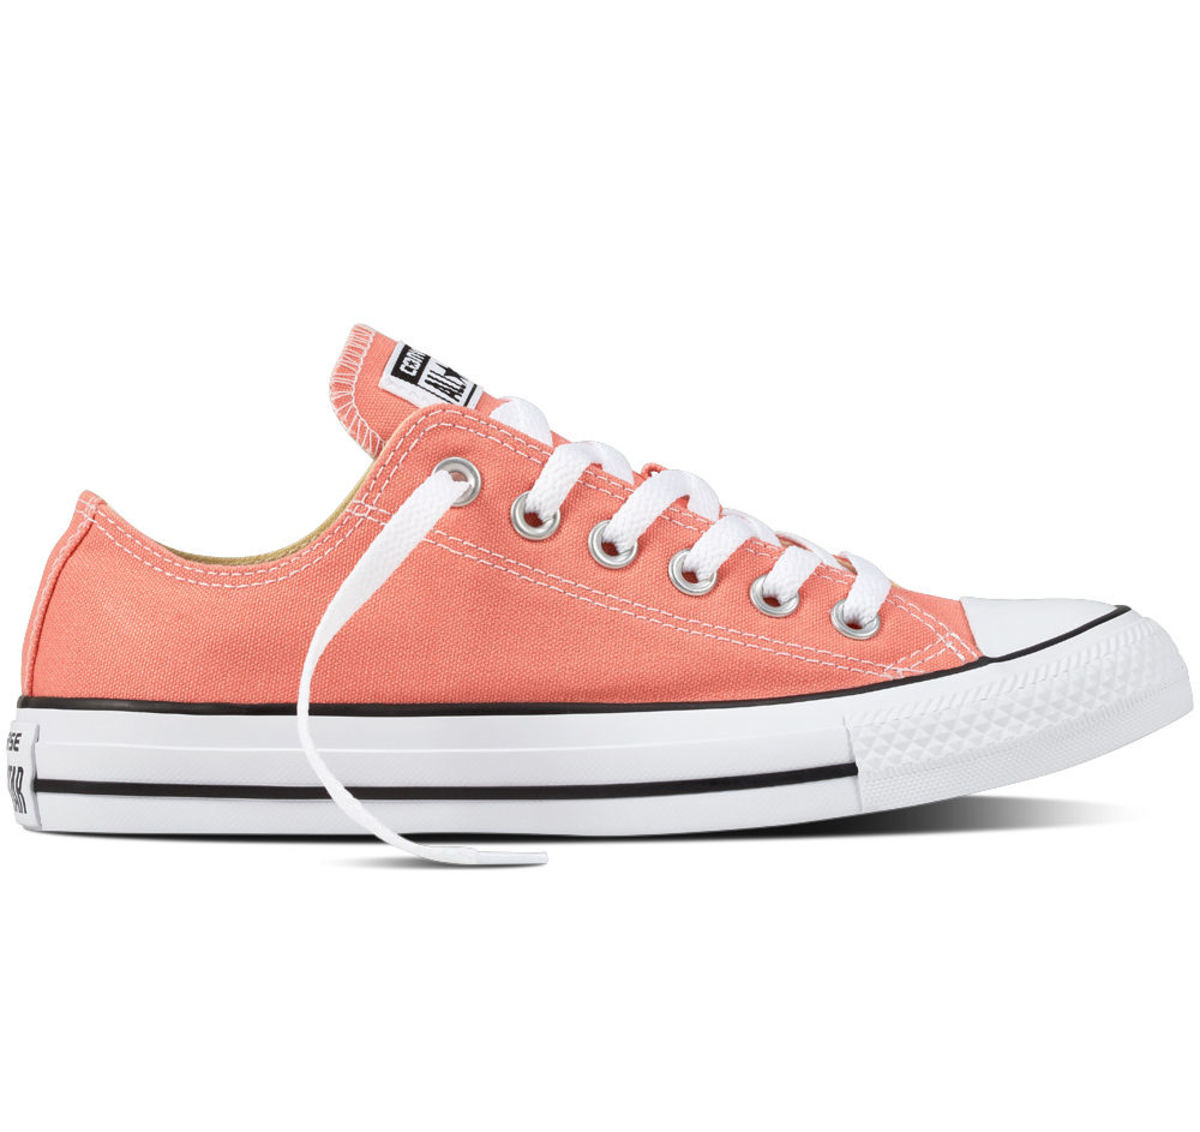 boty CONVERSE - Chuck Taylor All Star - C157645